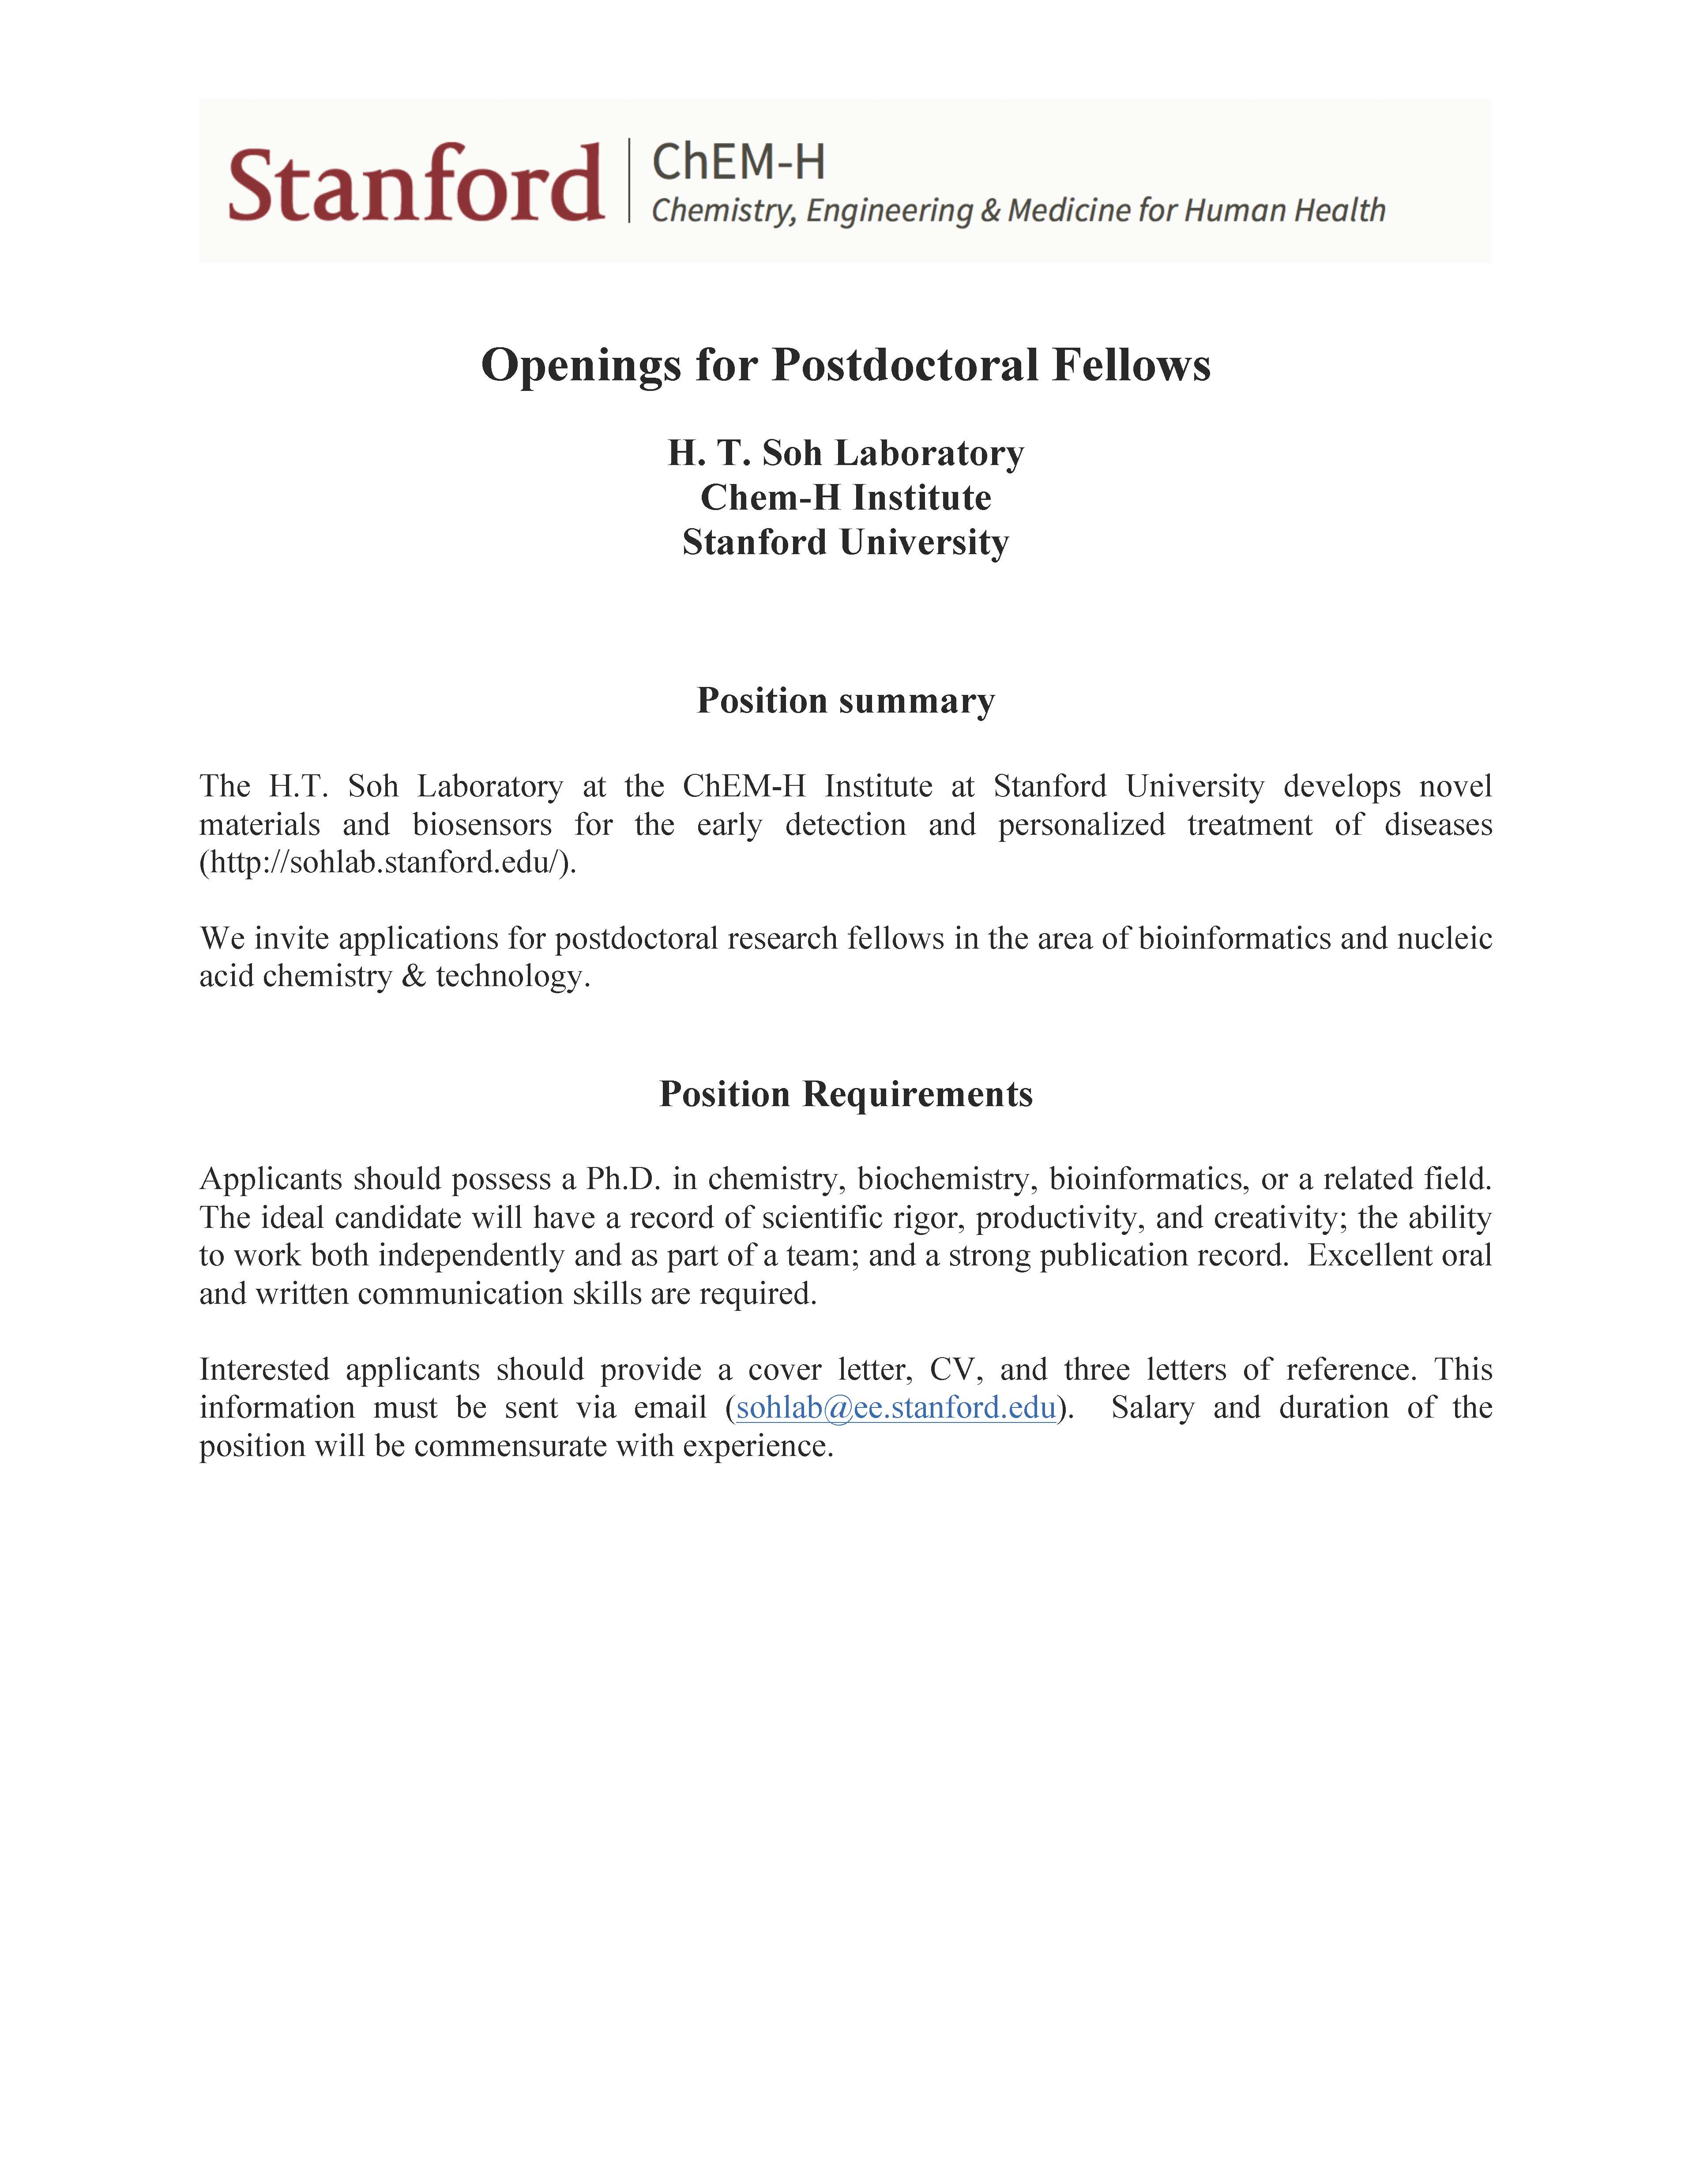 Cover Letter Biochemistry Postdoc - How to Write a Great